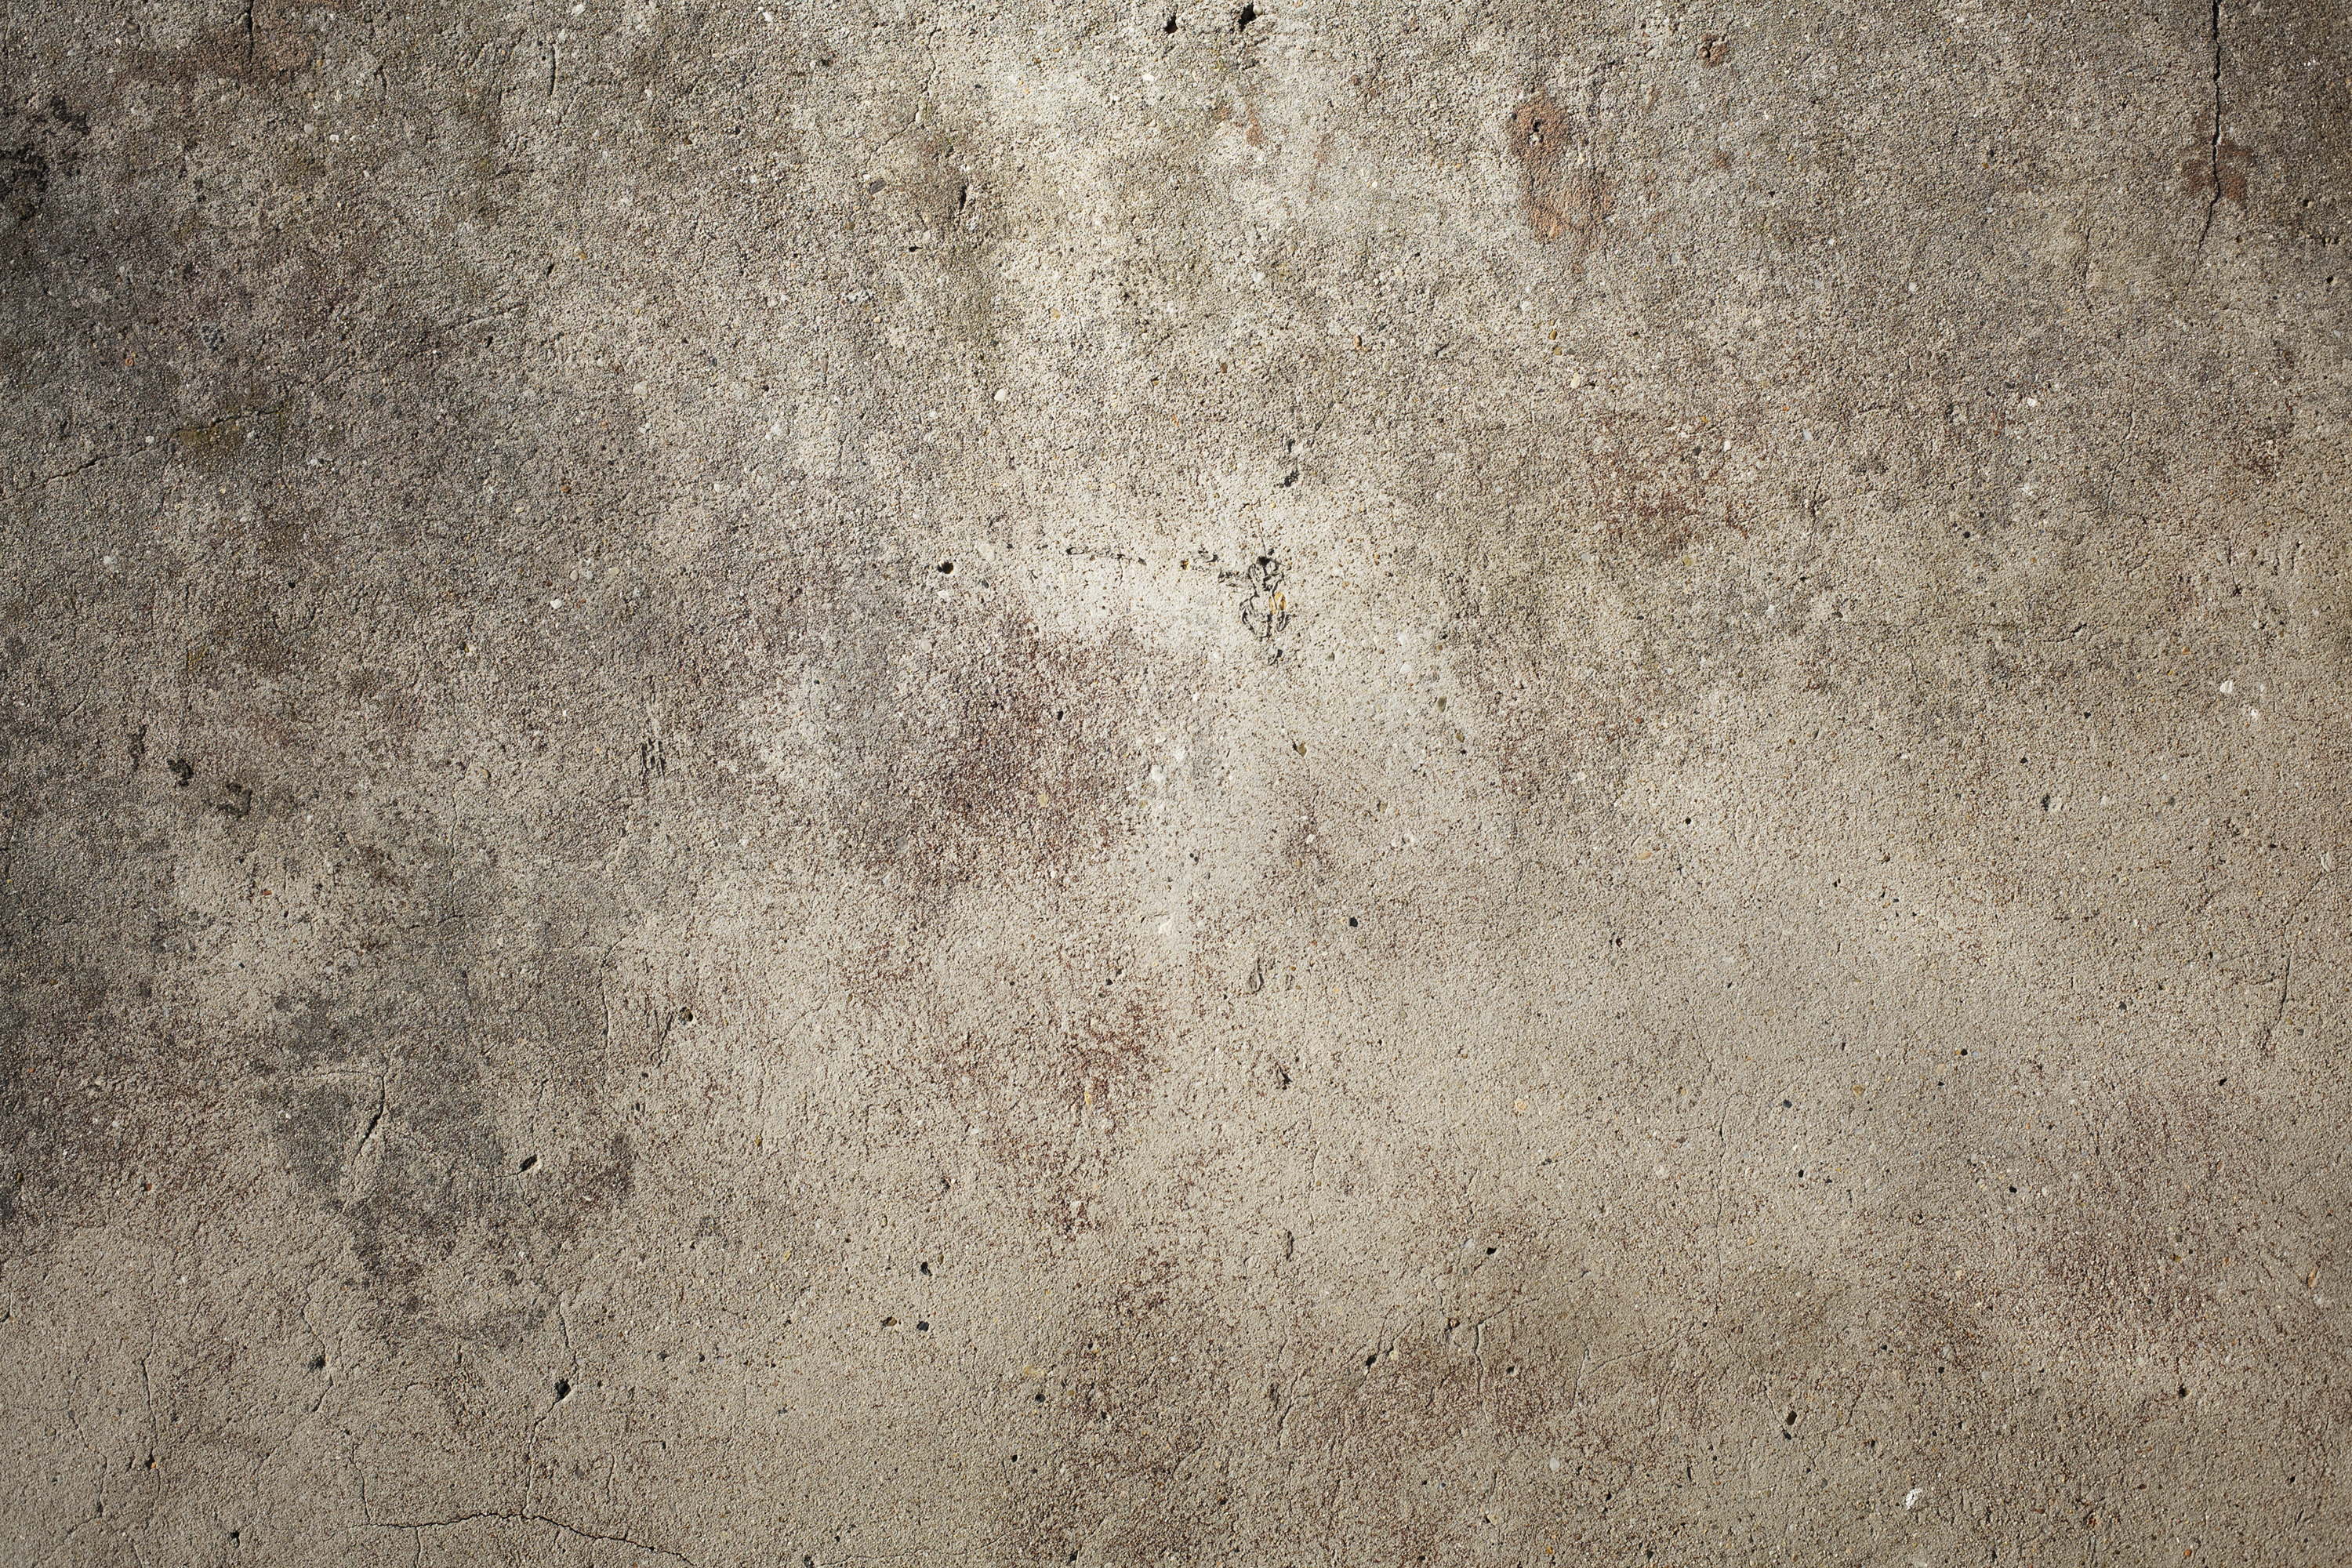 grunge concrete wall background 3000x2000